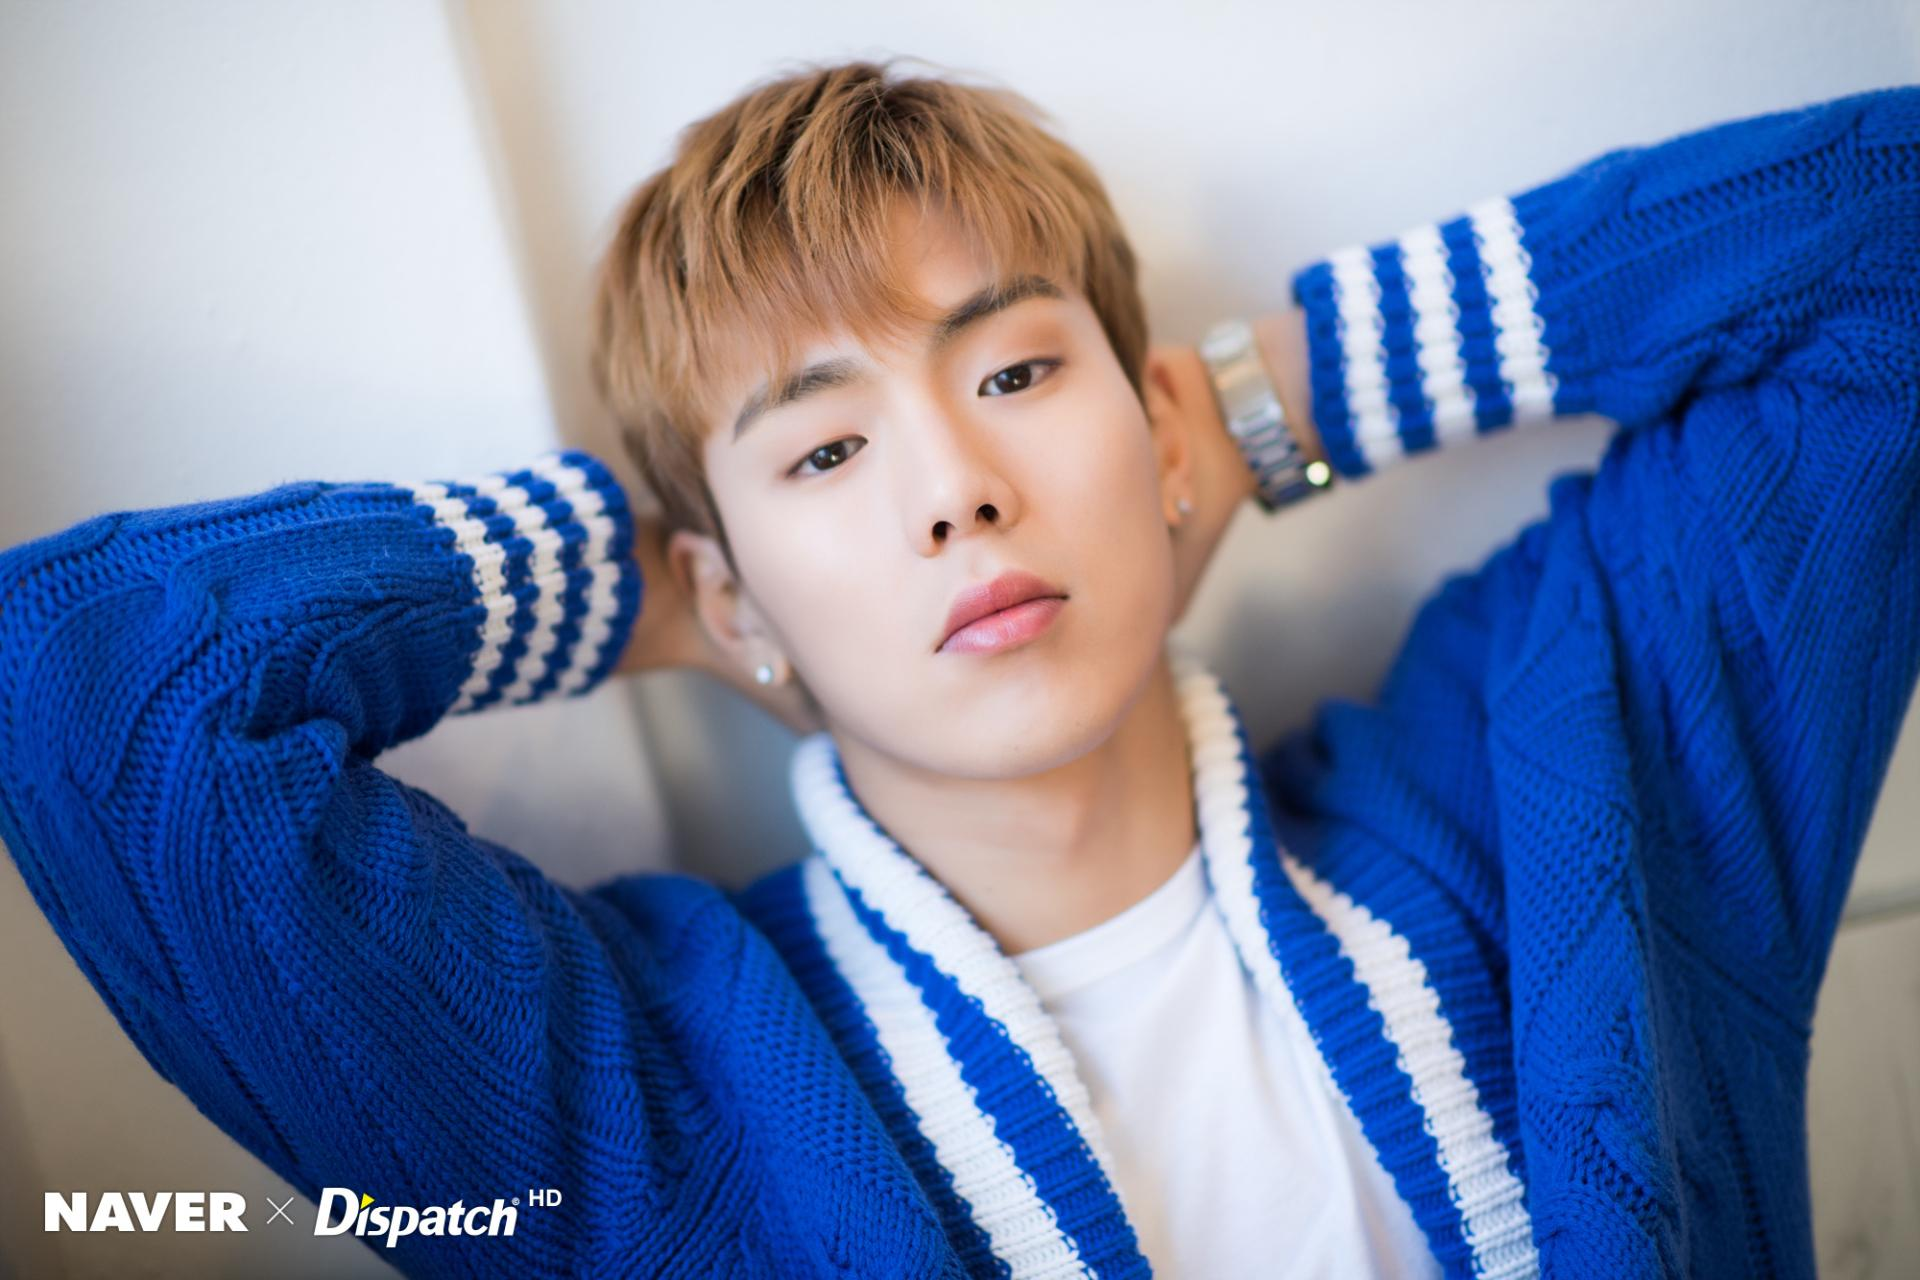 MONSTA X's Shownu To Not Participate In Promotions Due To Health Issues